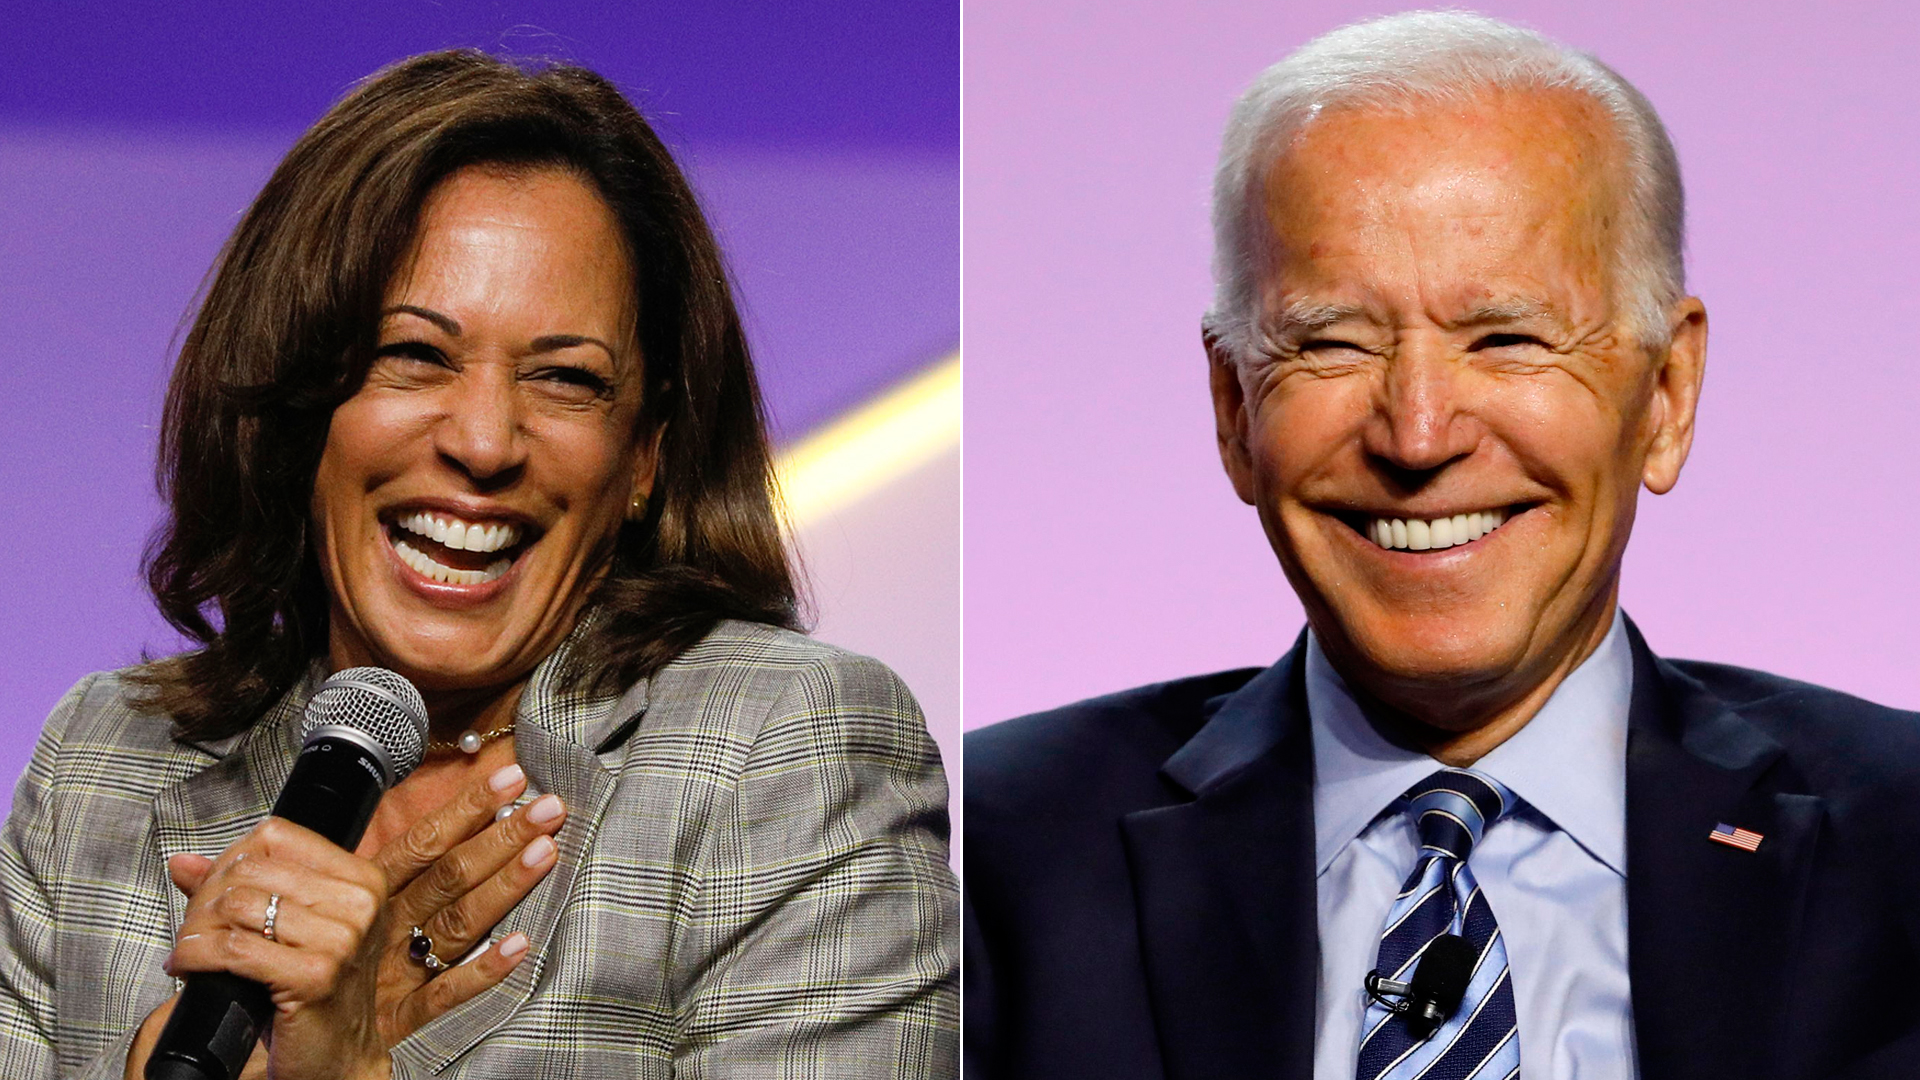 Kamala Harris, left, and Joe Biden participate in a presidential candidate forum at the NAACP 110th National Convention on July 24, 2019 in Detroit, Michigan. (Credit: Bill Pugliano/JEFF KOWALSKY/AFP/Getty Images)